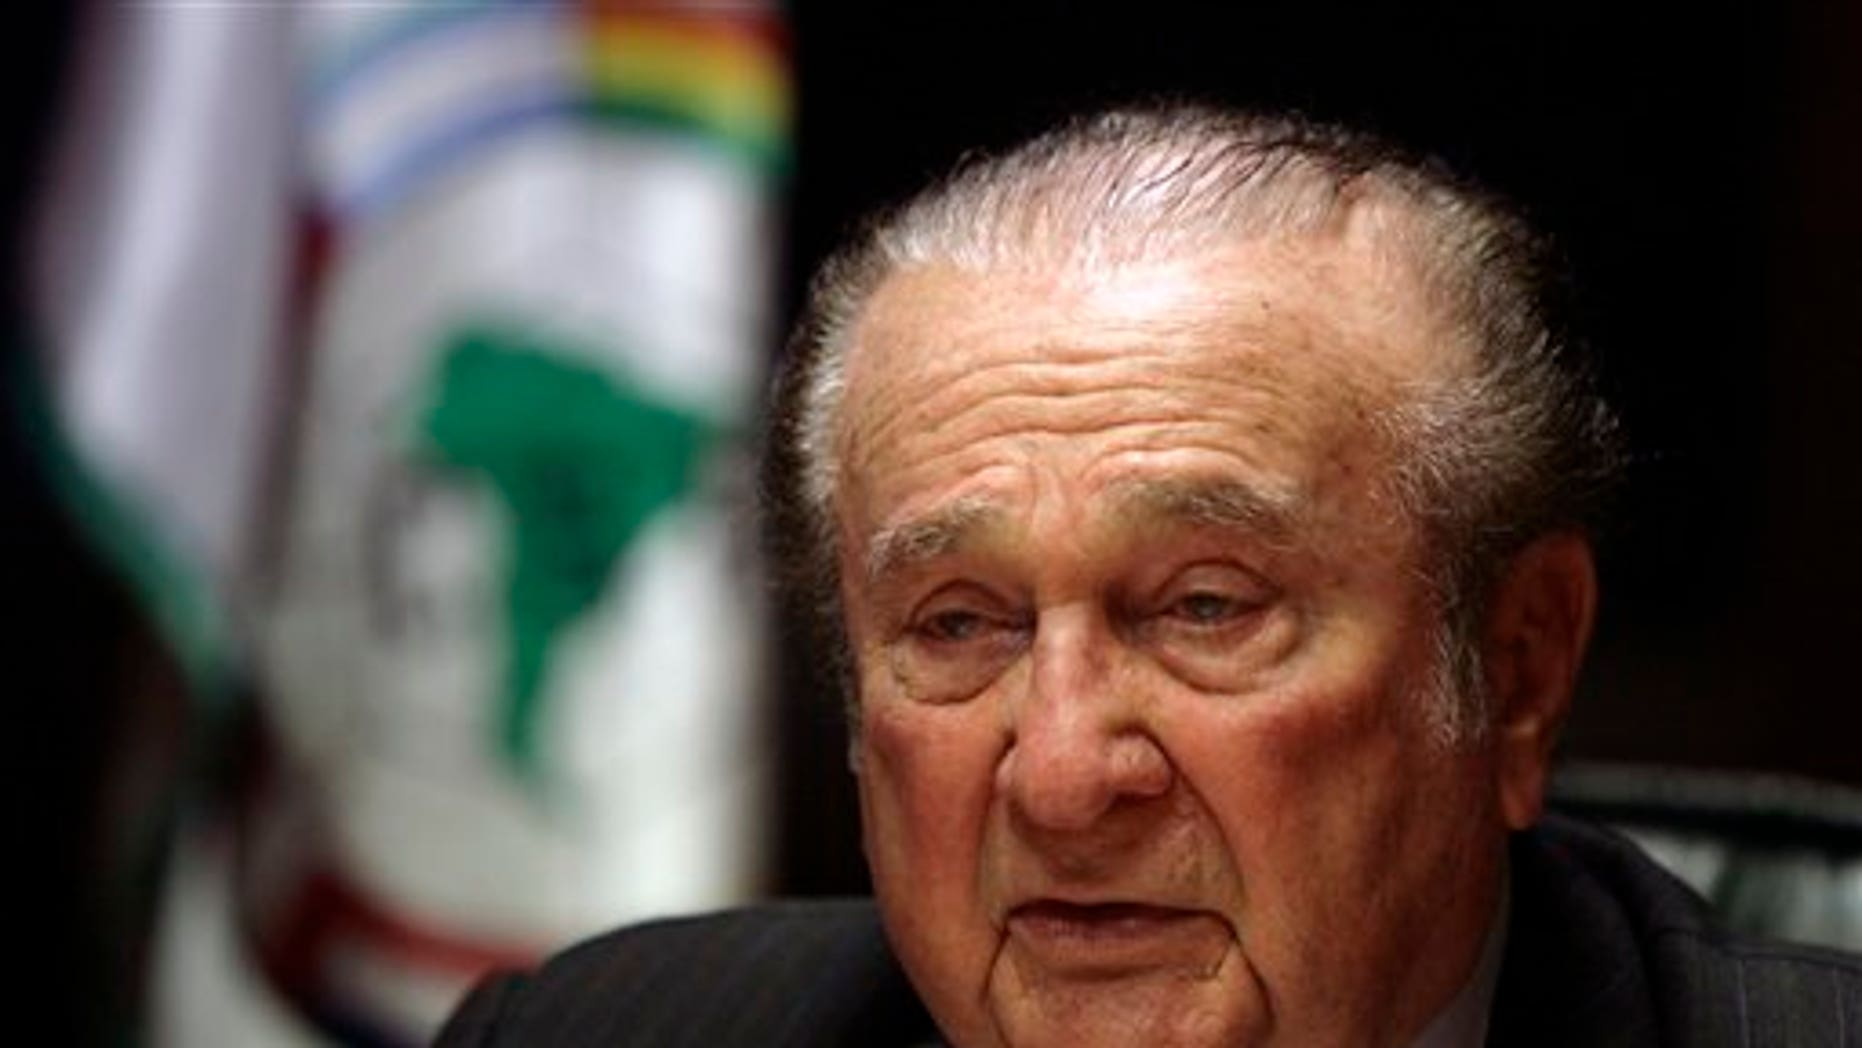 Conmebol's President Nicolas Leoz speaks during a press conference in Asuncion, in this Friday, May 8, 2009 file photo.   Two European newspapers say they have obtained a document naming three FIFA executive committee members who allegedly received secret payments from world football's former marketing agency.  The allegations come three days before the trio are to take part in FIFA's vote on the hosts for the 2018 and 2002 World Cups. Swiss newspaper Tages-Anzeiger and Germany's Sueddeutsche Zeitung identify them as Ricardo Teixeira of Brazil, Nicolas Leoz of Paraguay and Issa Hayatou of Cameroon.   (AP Photo/Jorge Saenz, file)